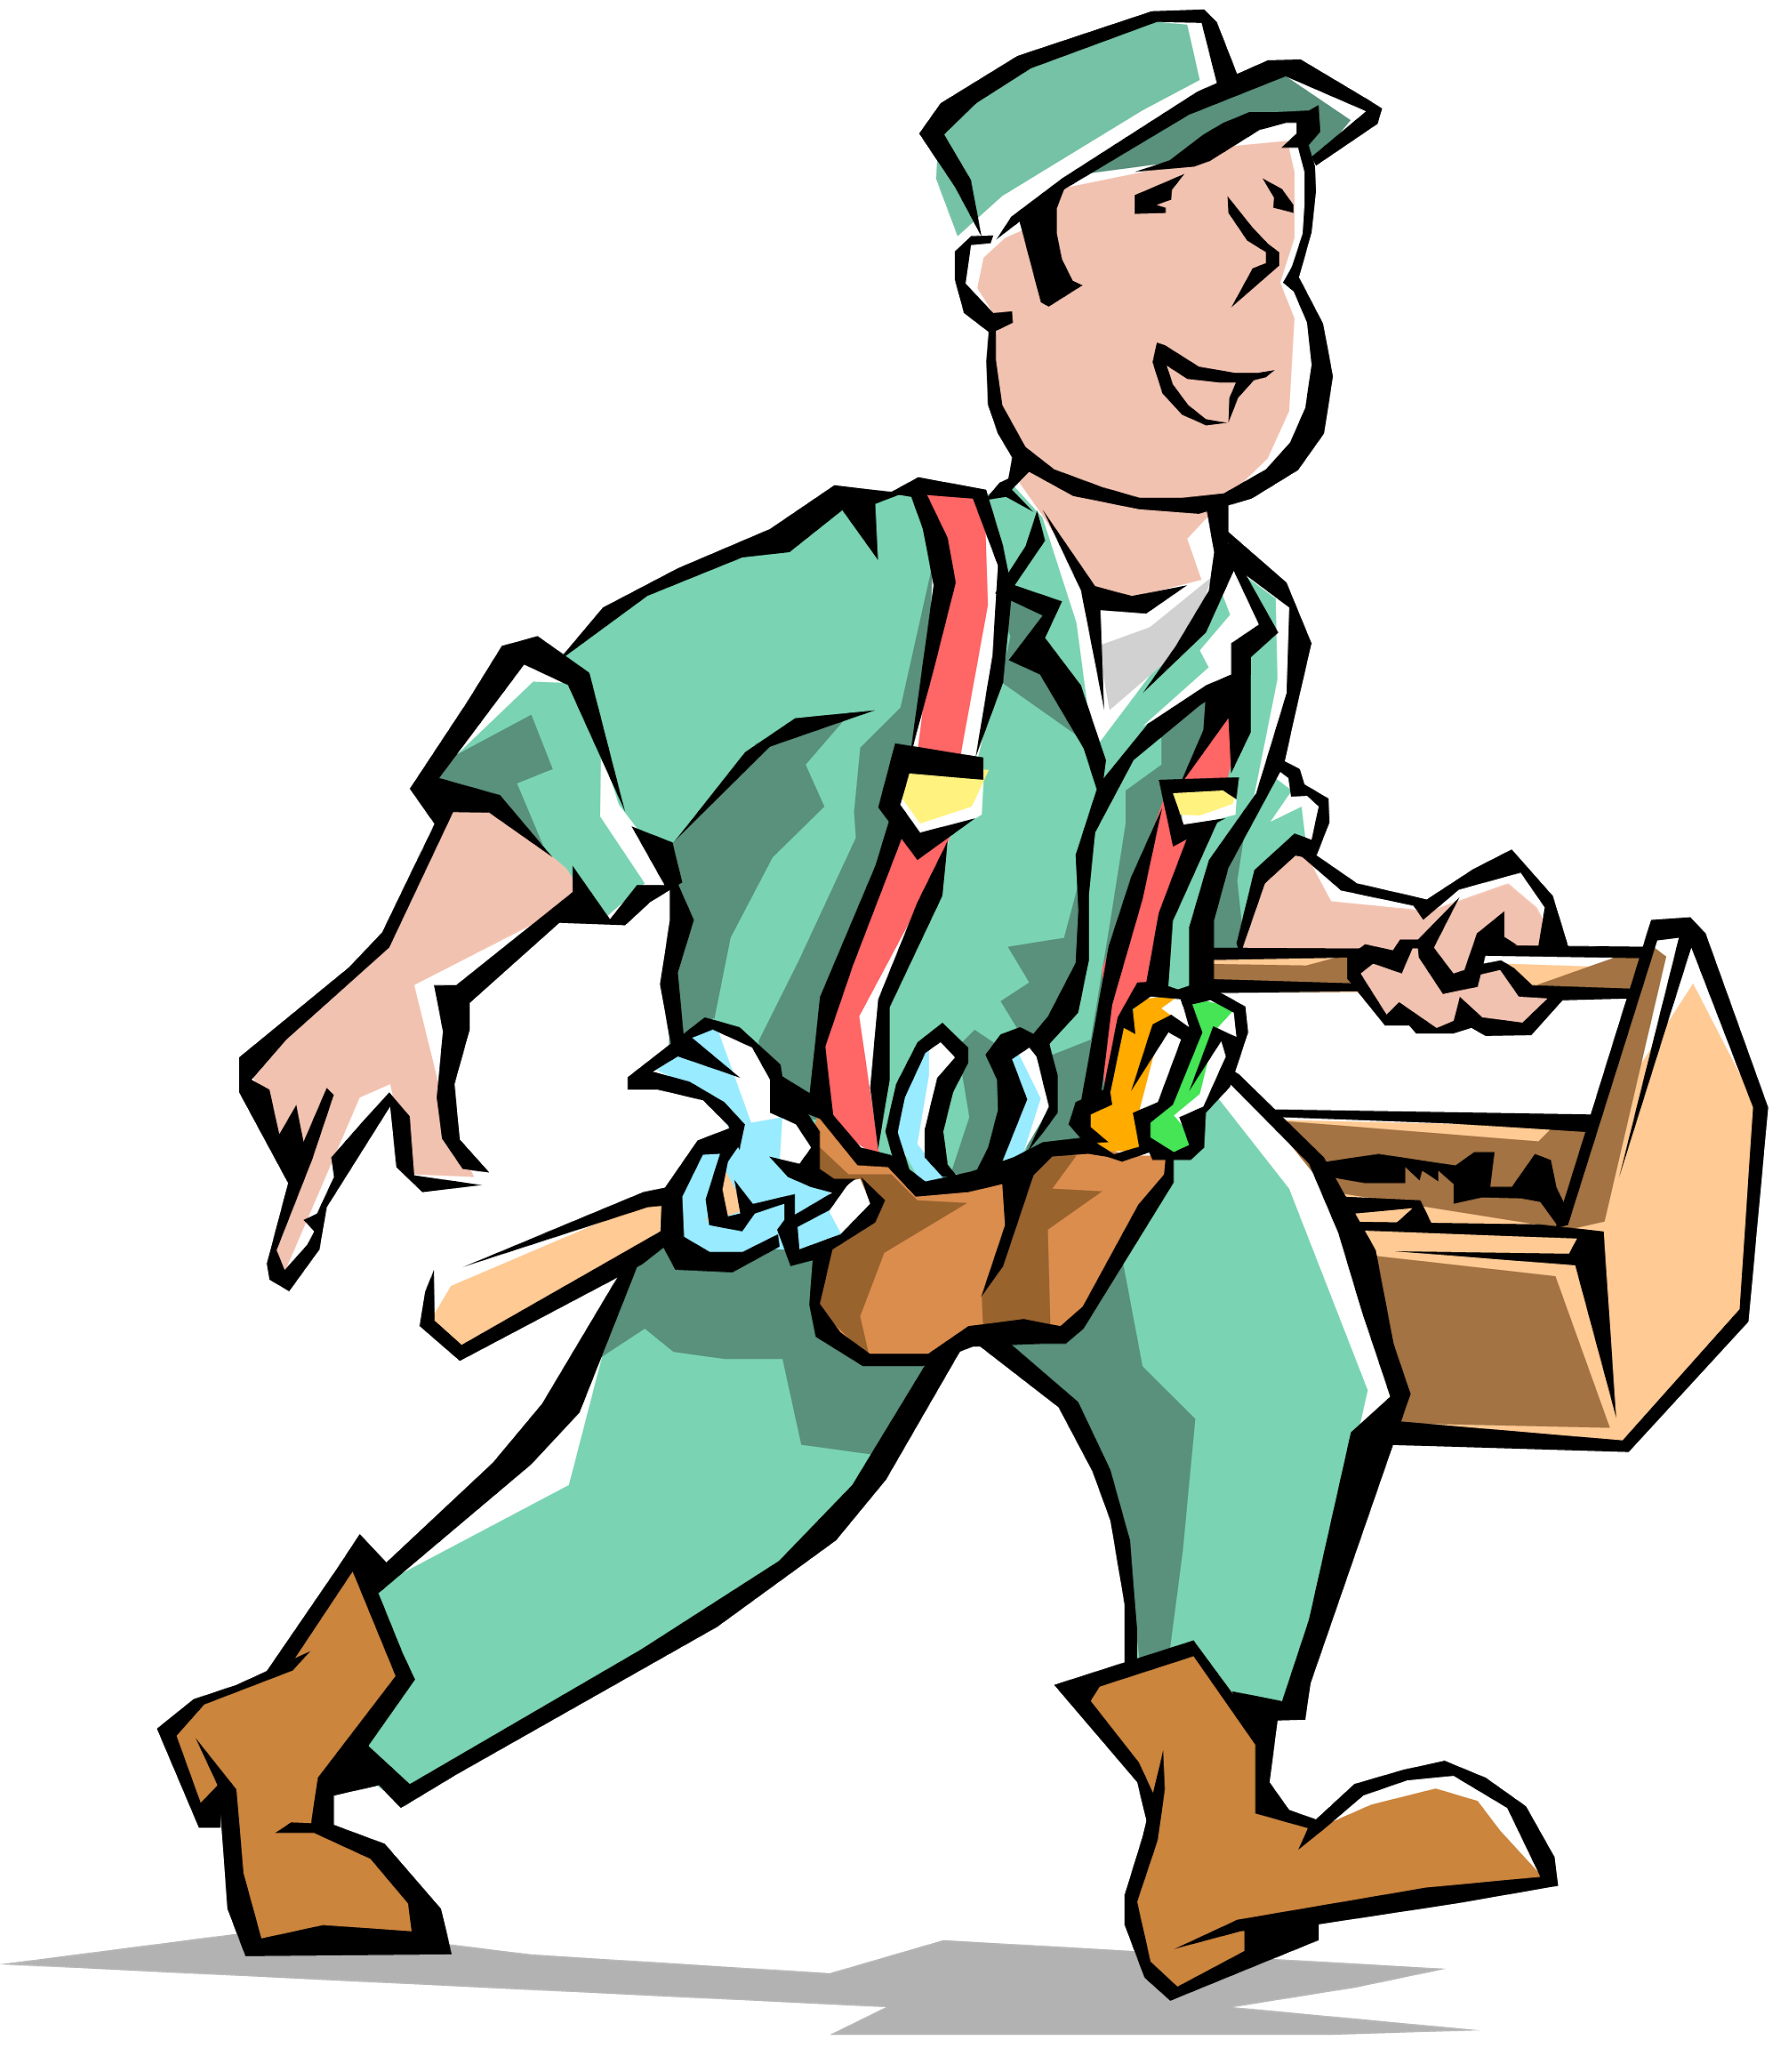 Free Pictures Of Handyman, Download Free Clip Art, Free Clip Art on.